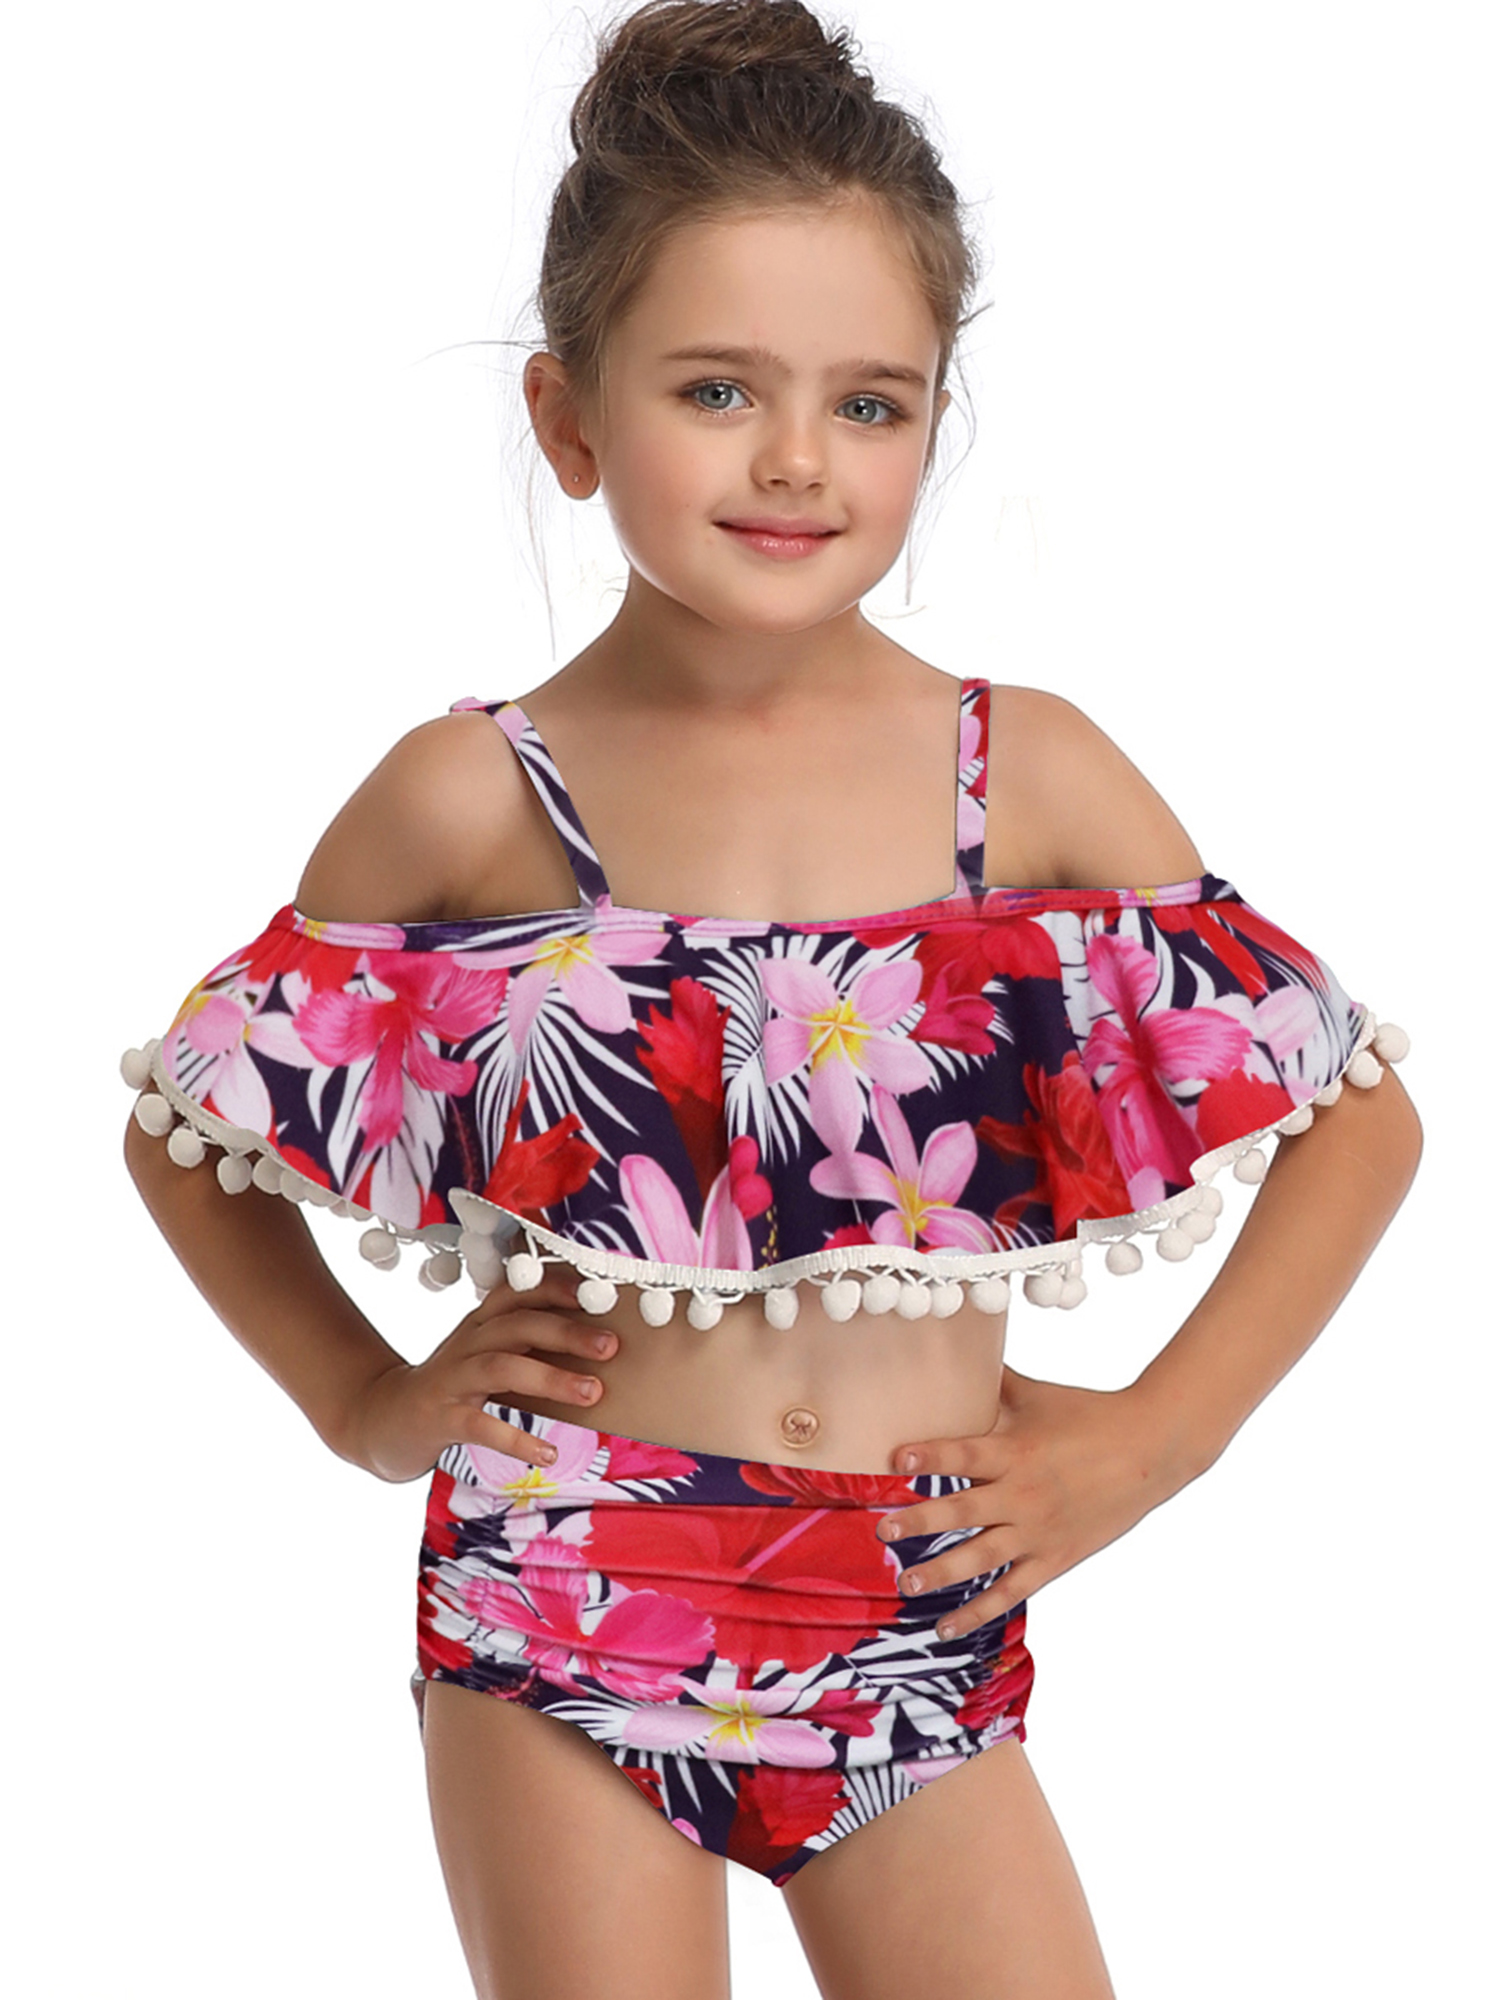 Mother Daughter Matching Swimsuit Floral High Waist Bikini Set for Women Girls